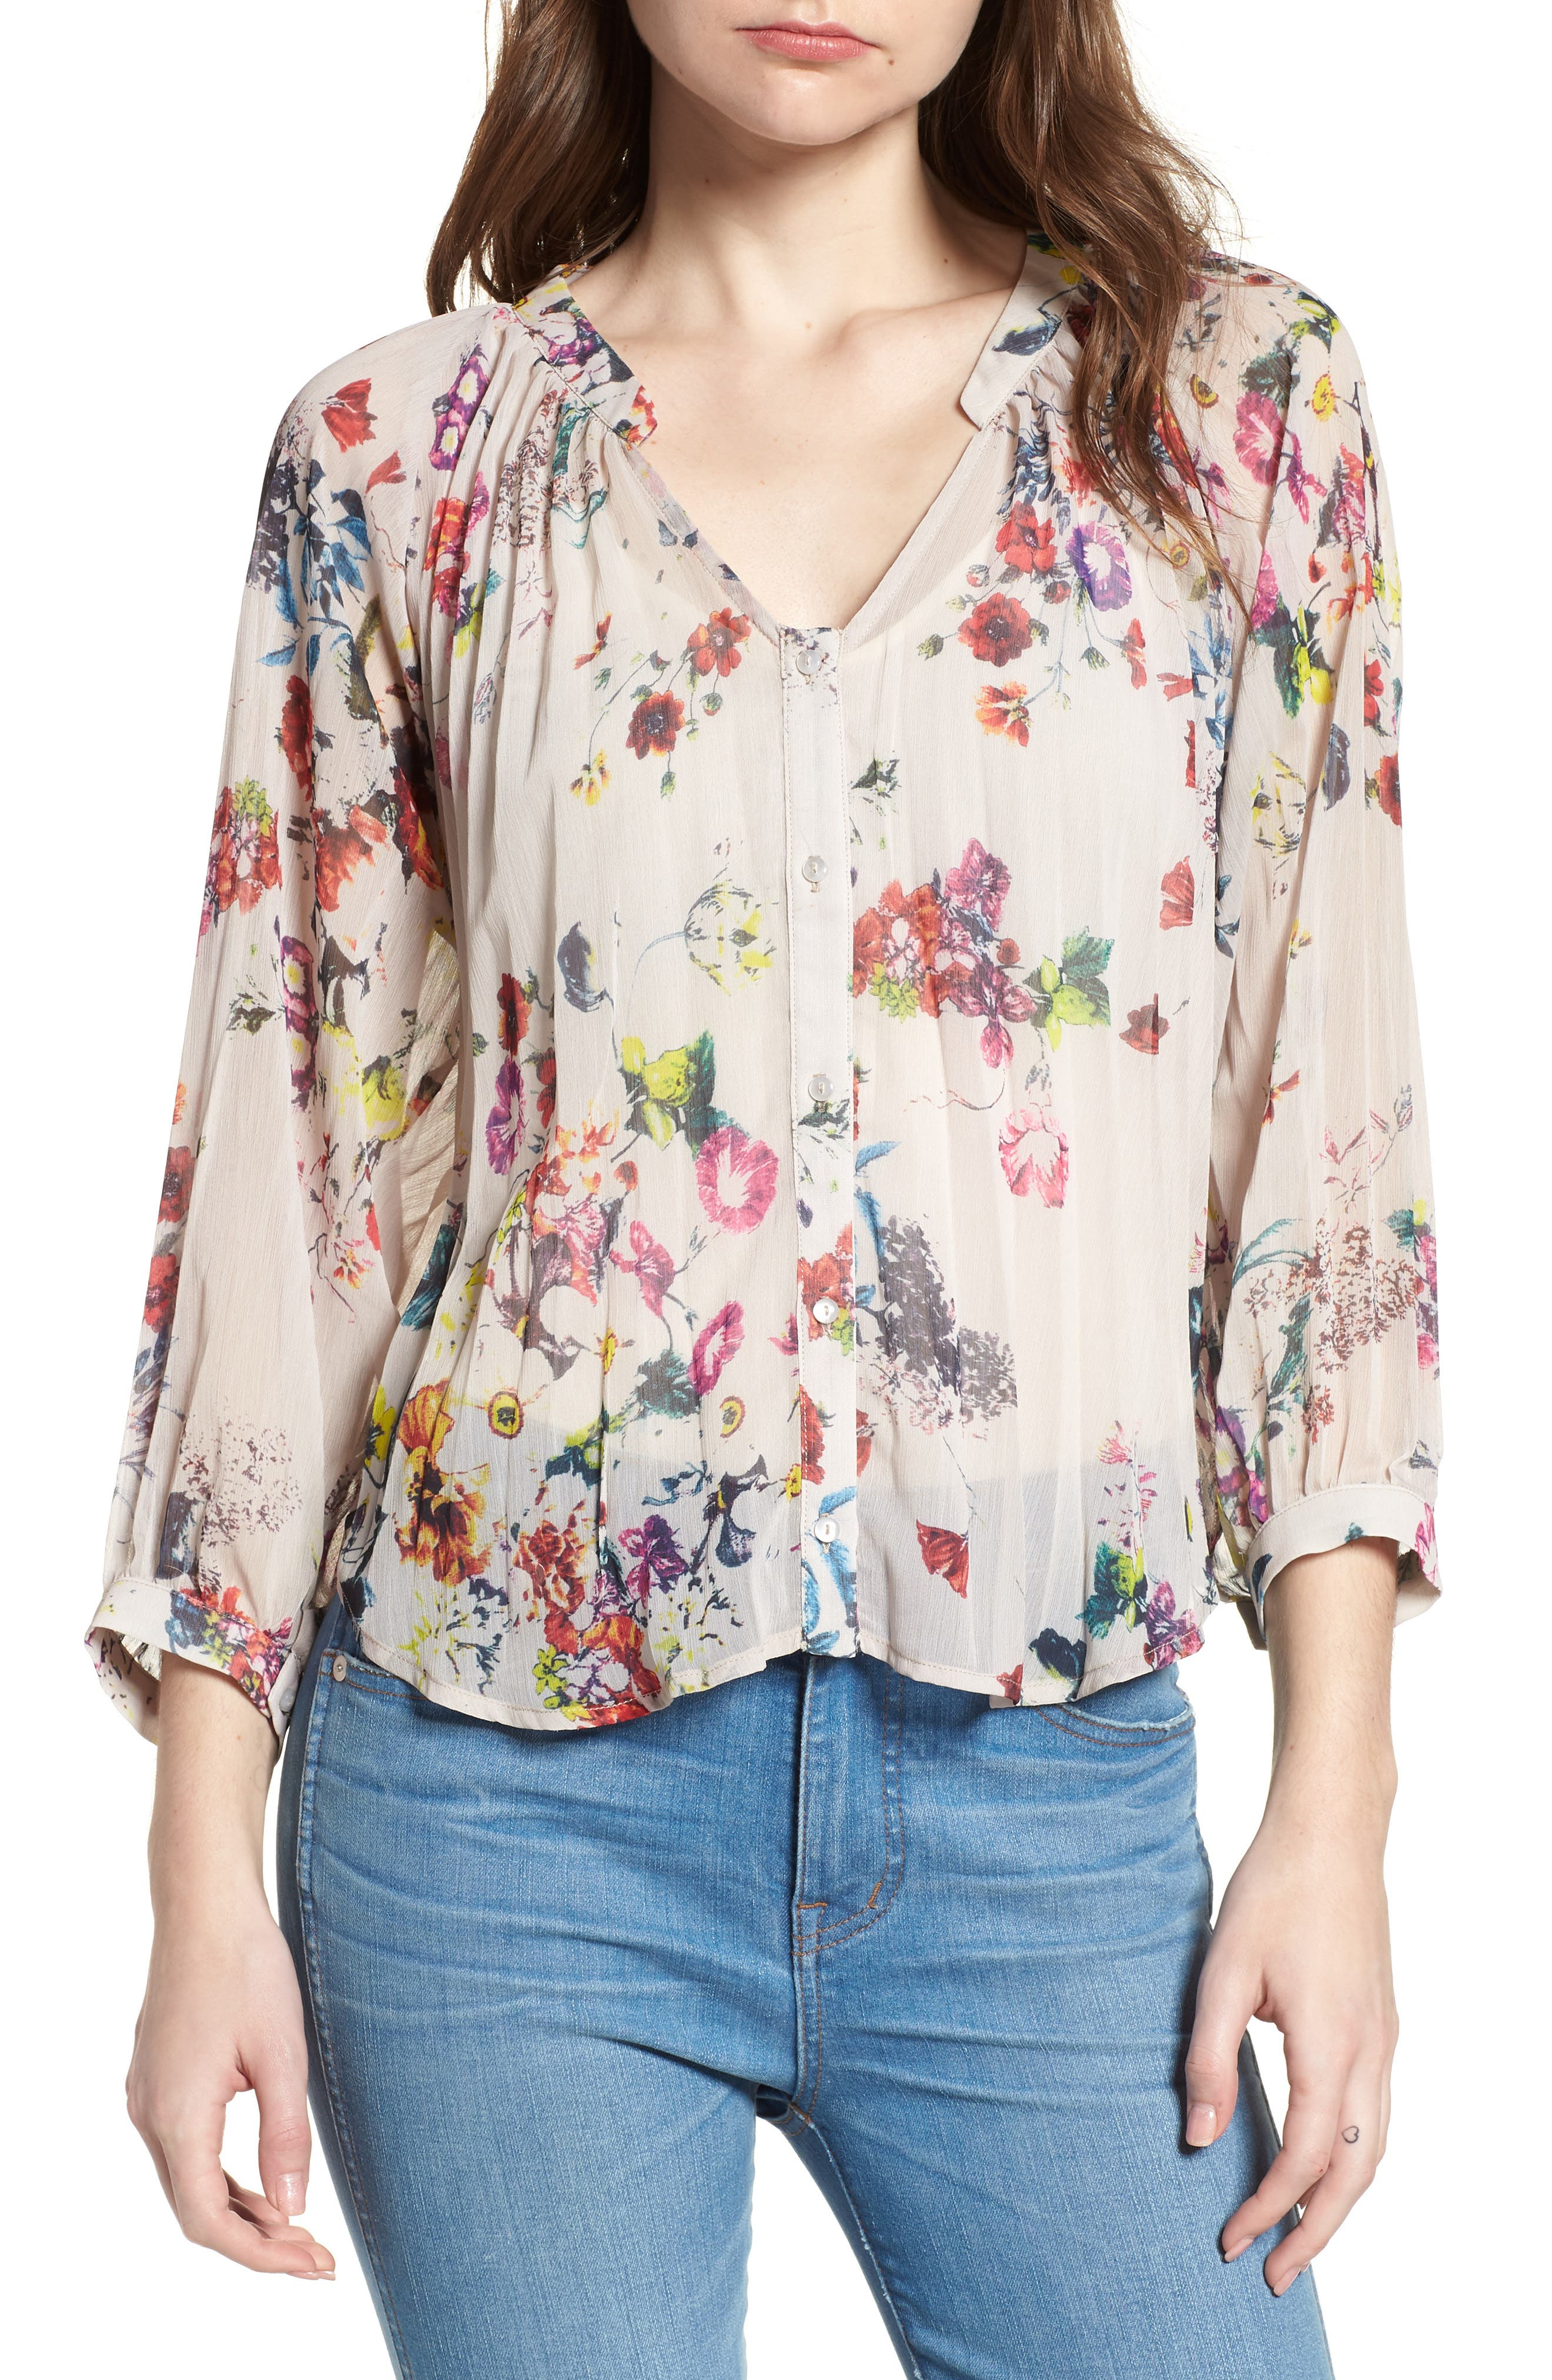 Bishop + Young Floral Pleated Top,                             Main thumbnail 1, color,                             Romance Print